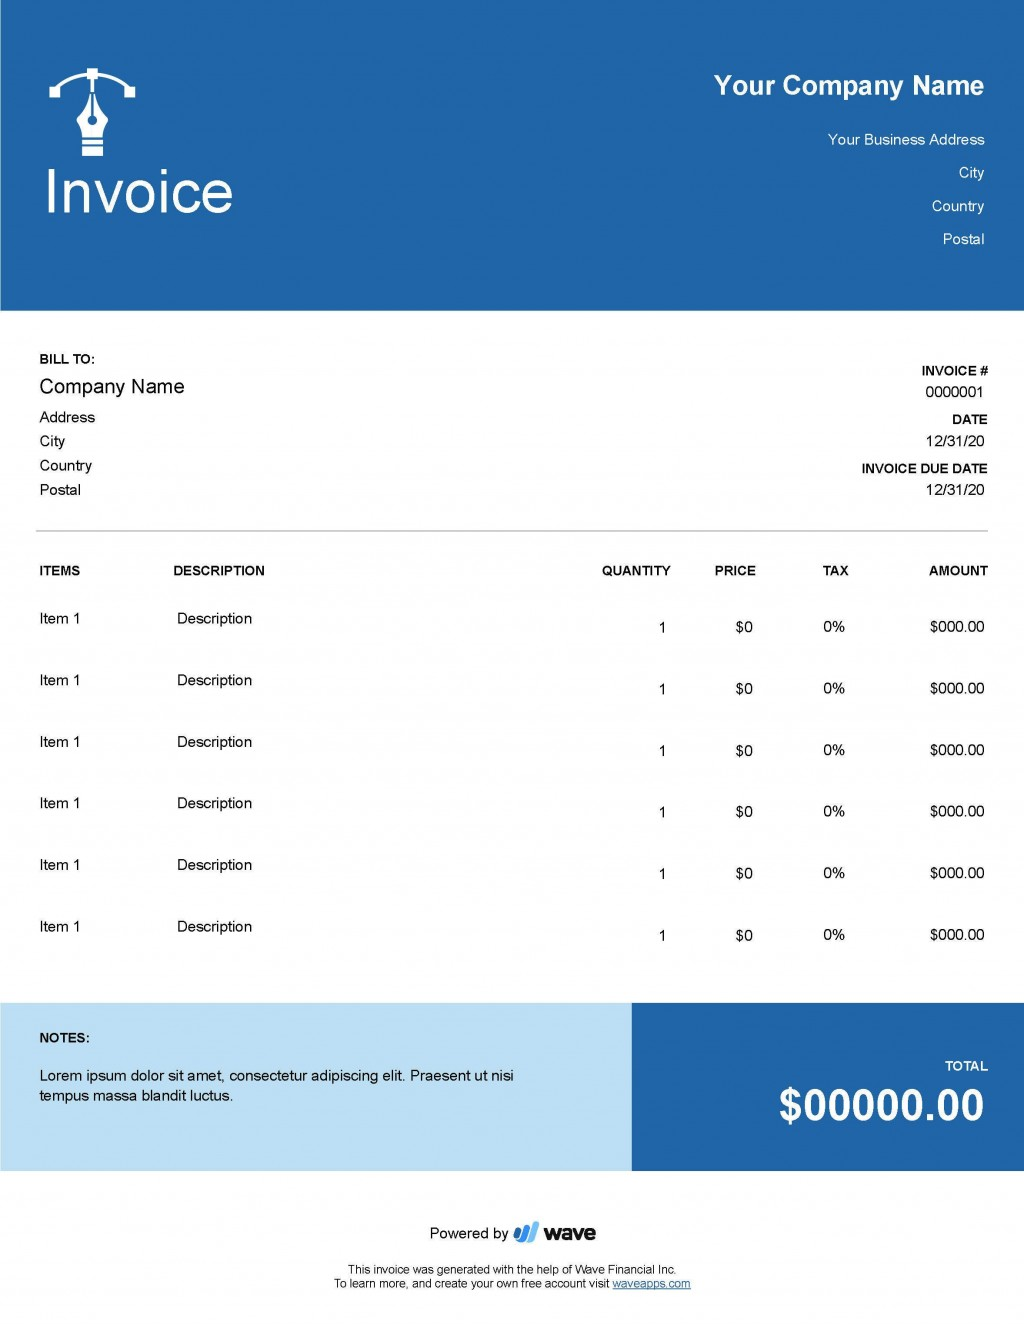 007 Unforgettable Freelance Graphic Design Invoice Example High Def  Template ContractLarge